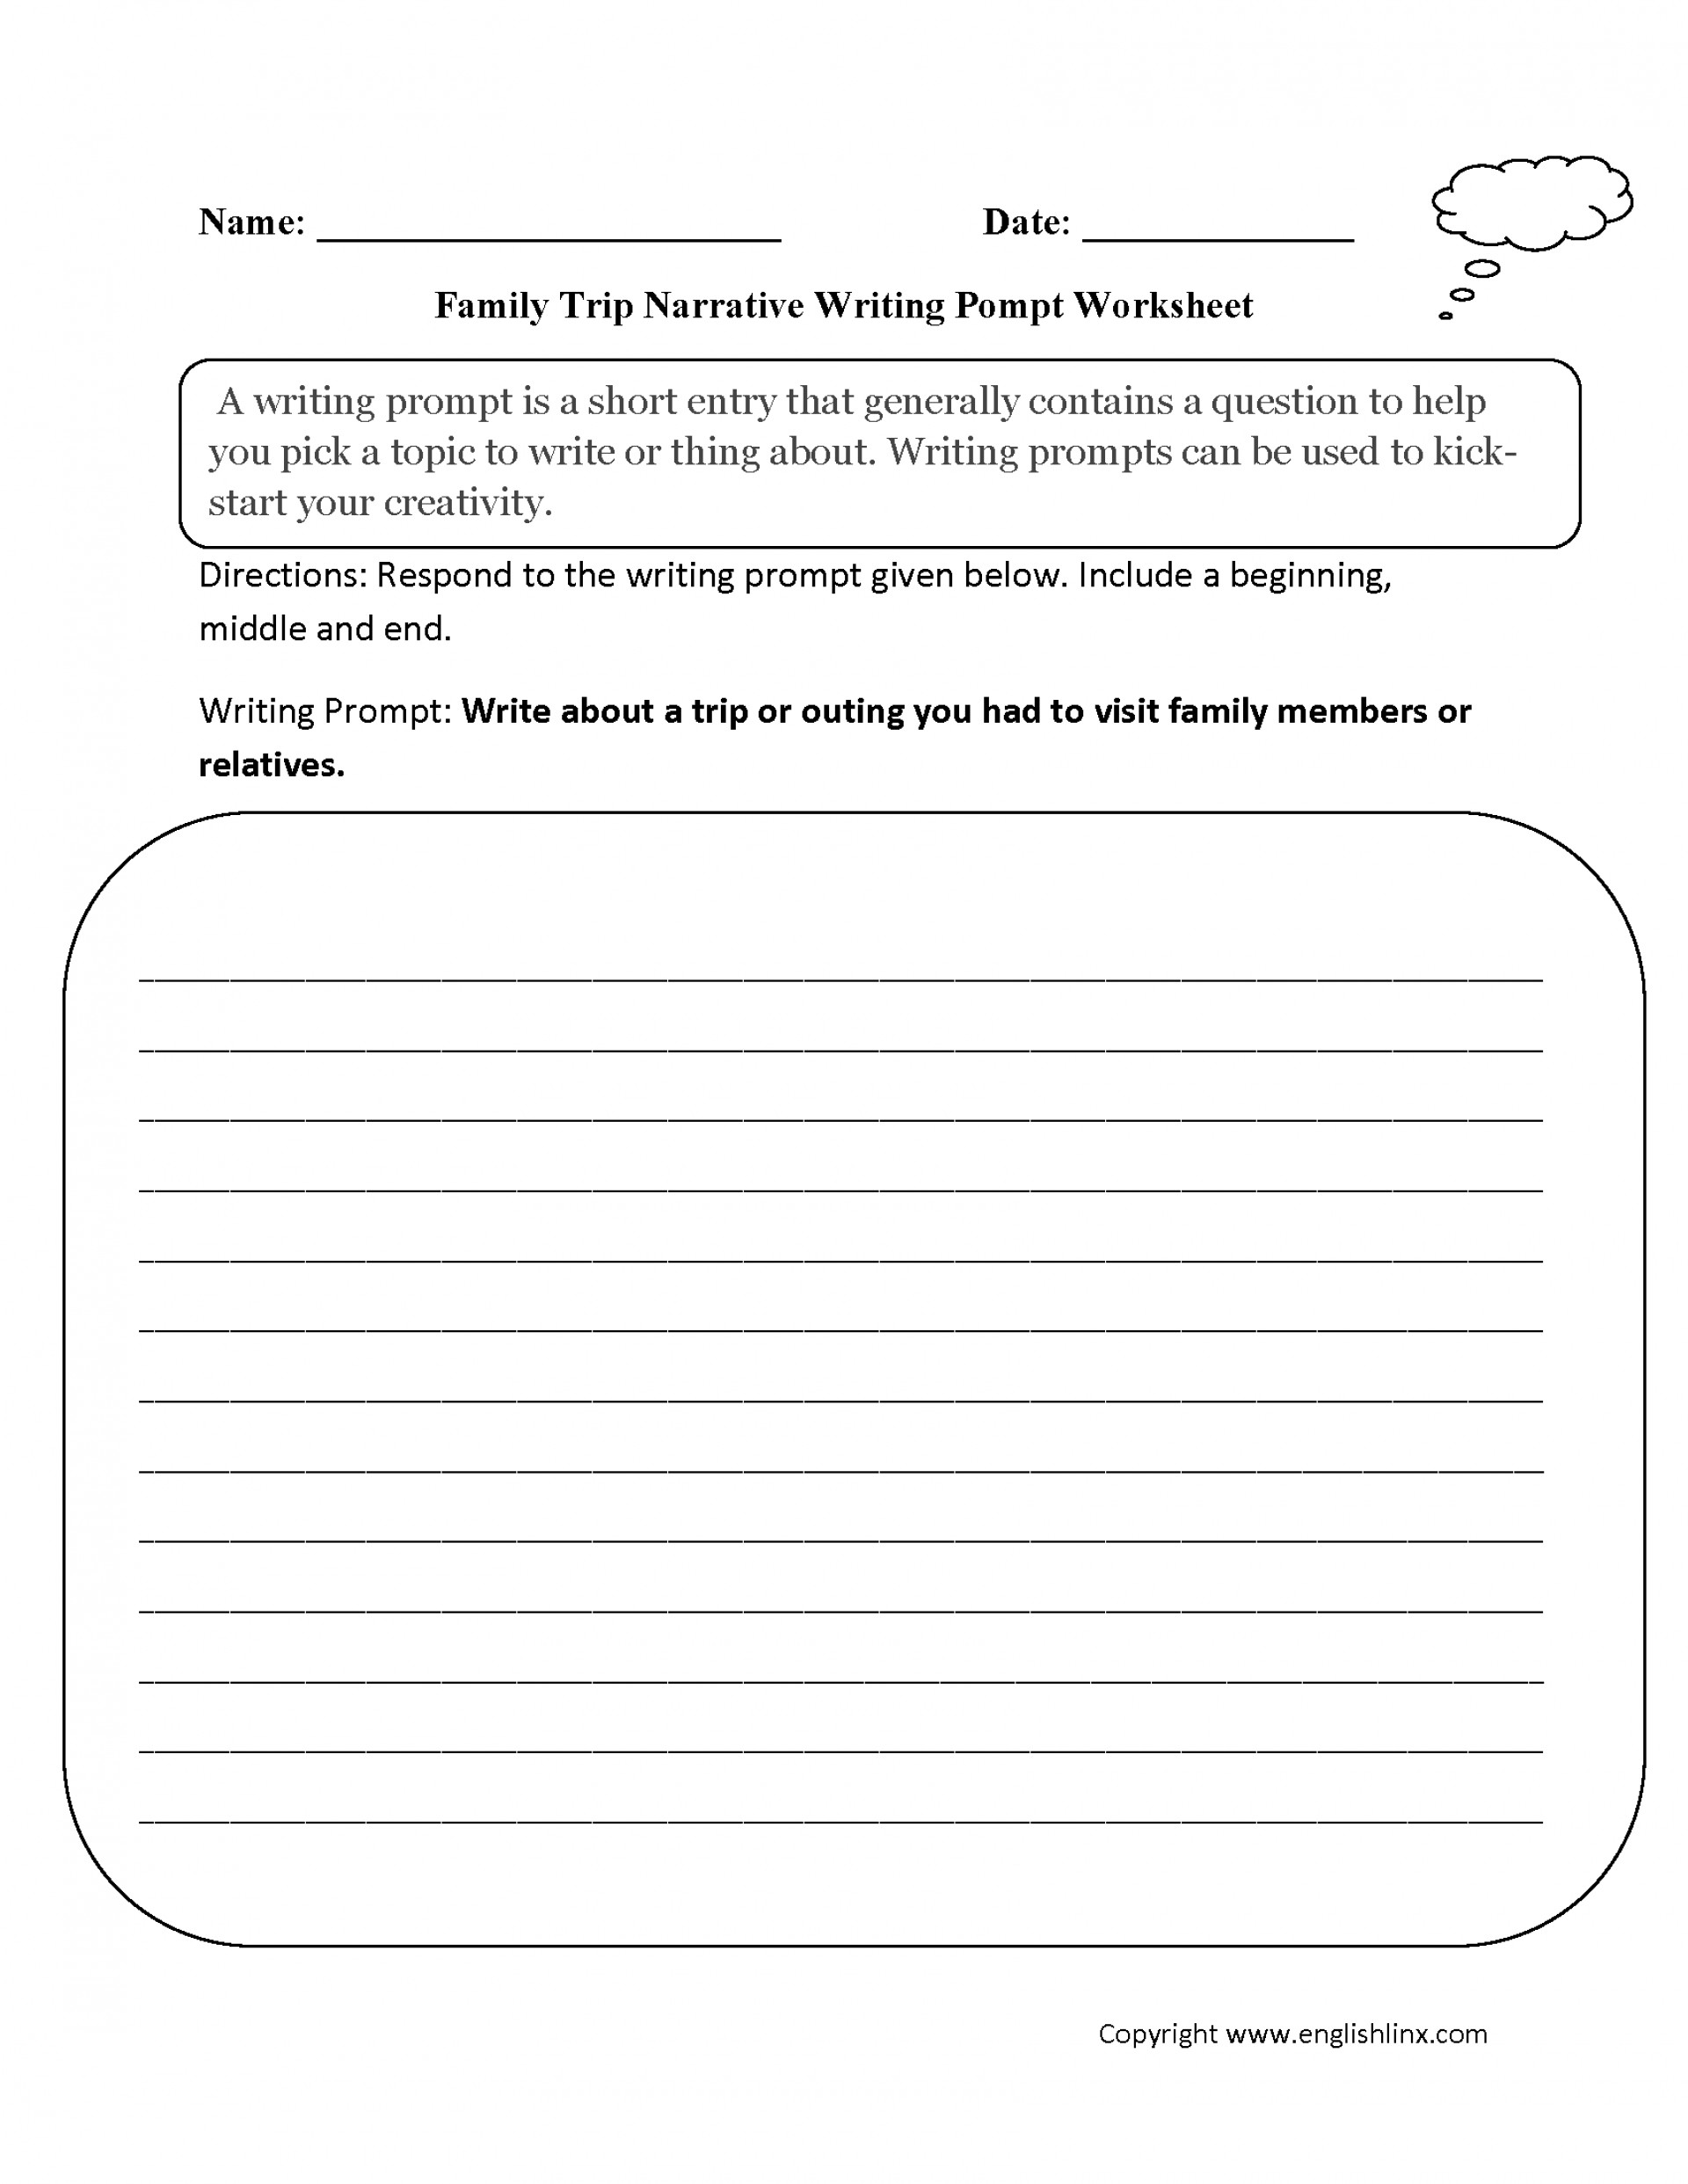 019 Family Trip Narrative Writing Prompt Worksheet 5th